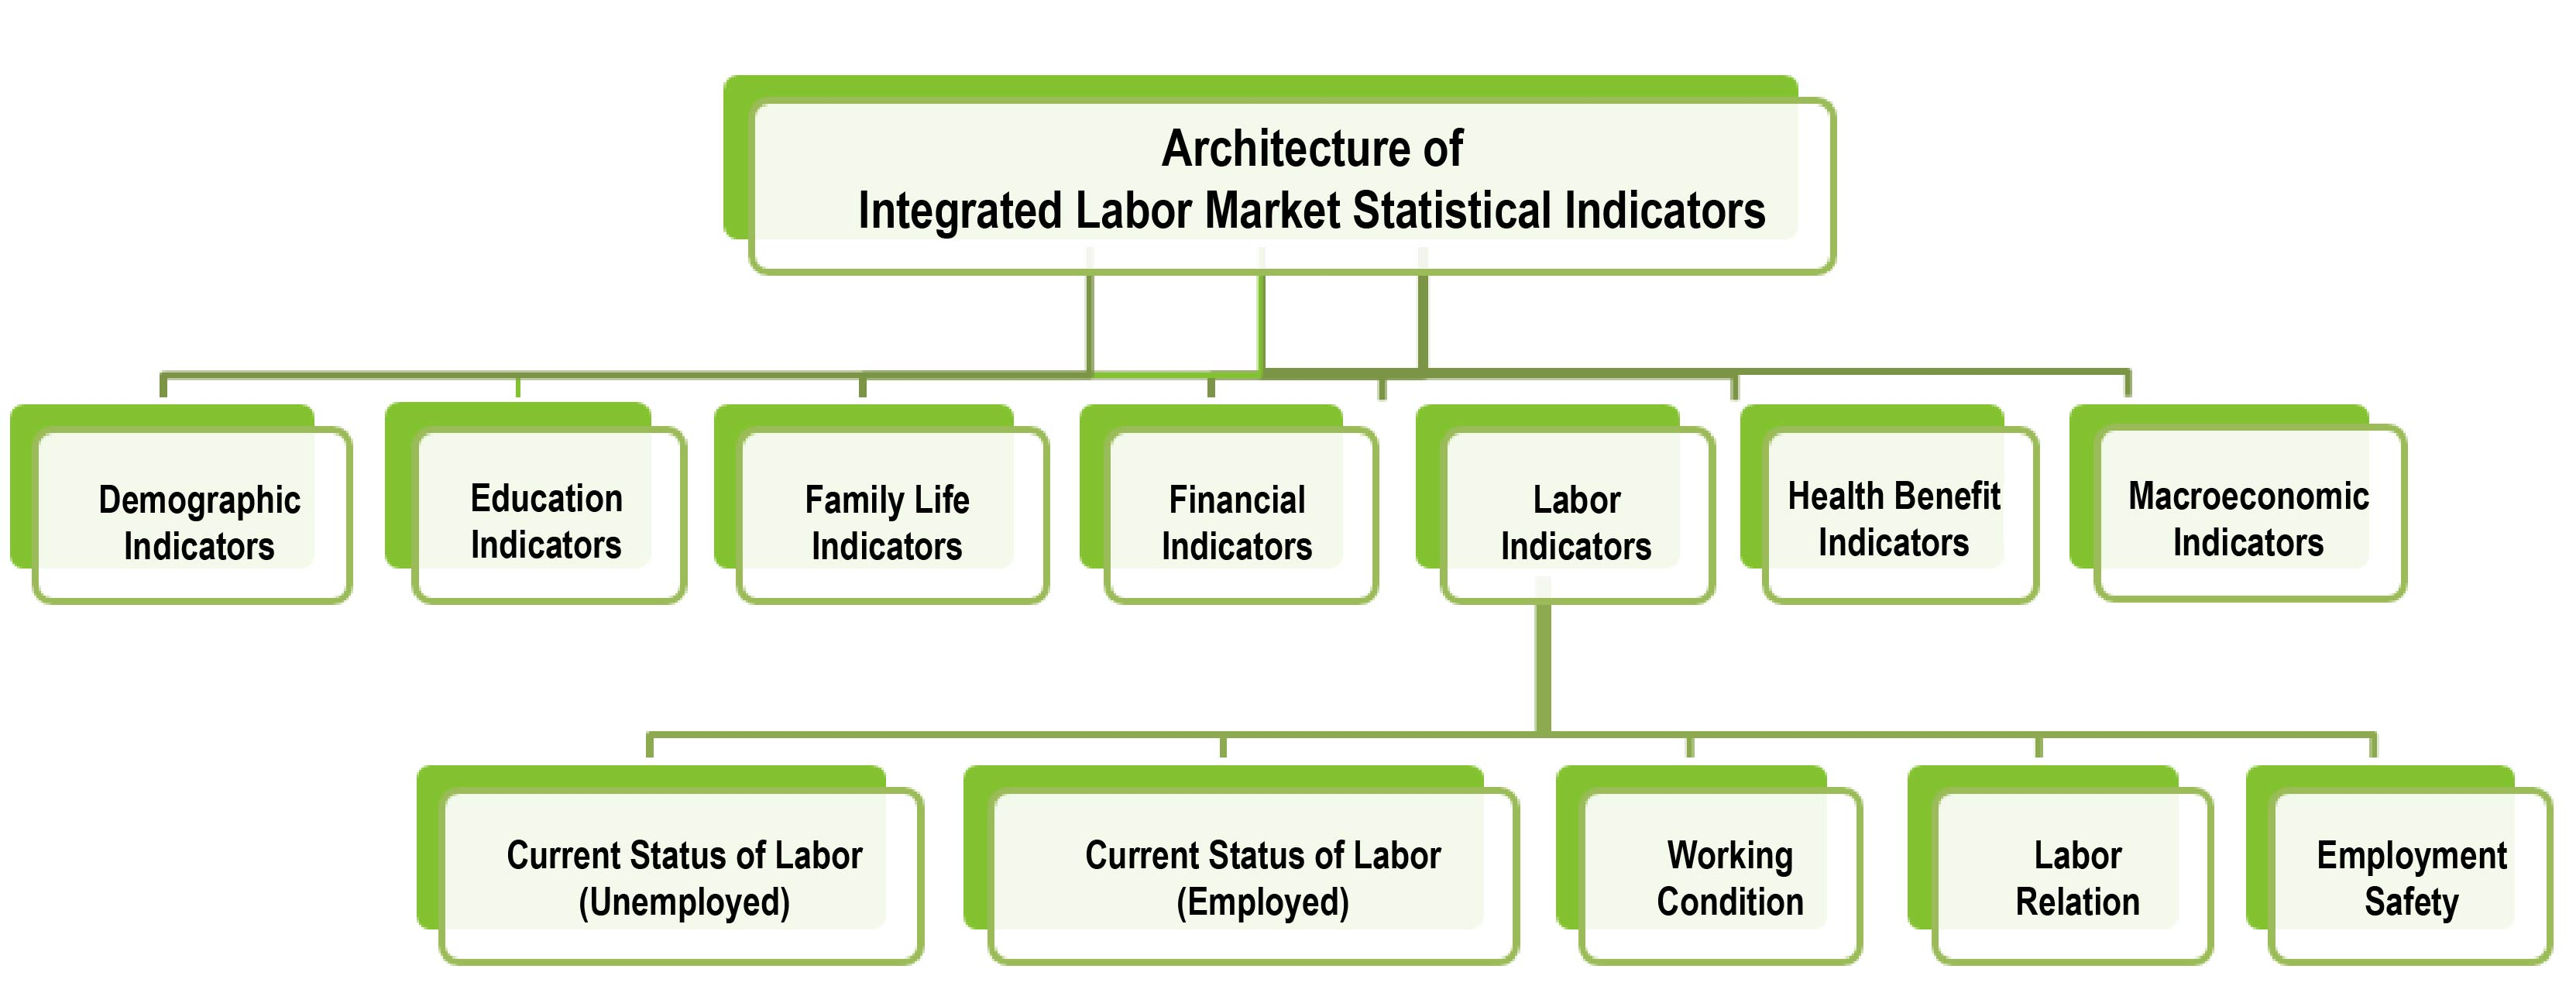 Architecture of Integrated Labor Market Statistical Indicators